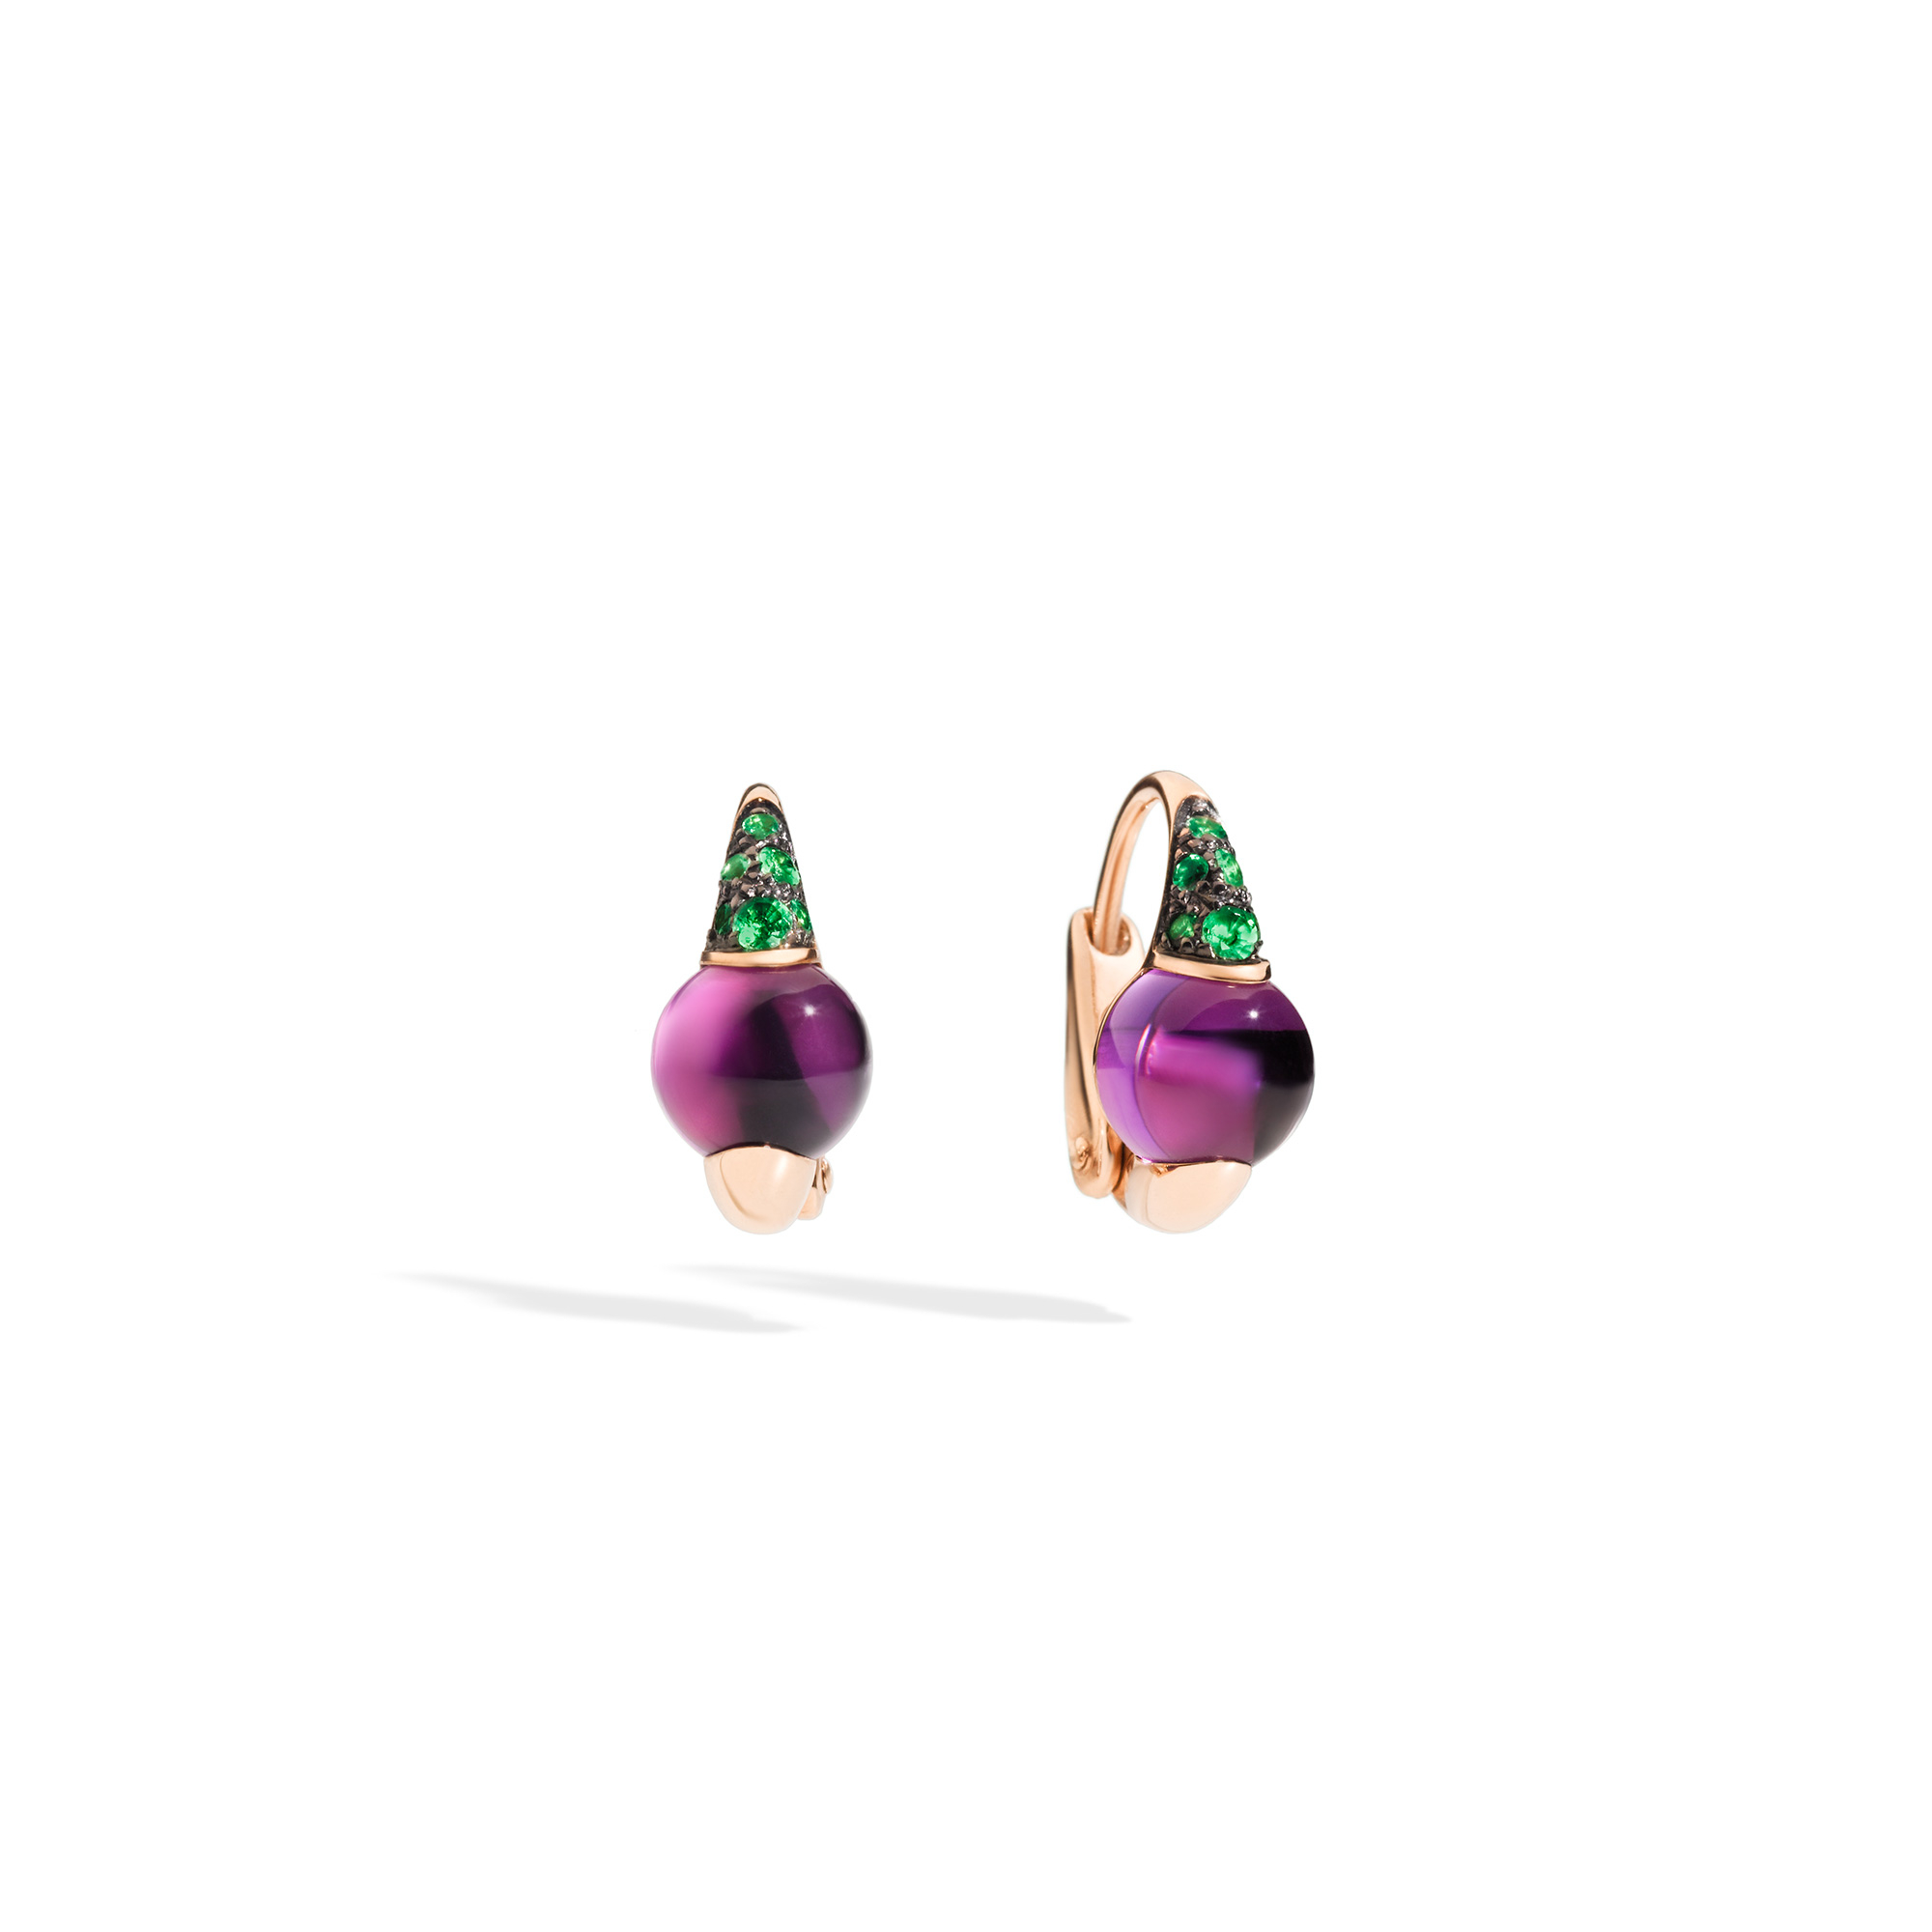 EARRINGS M'AMA NON M'AMA